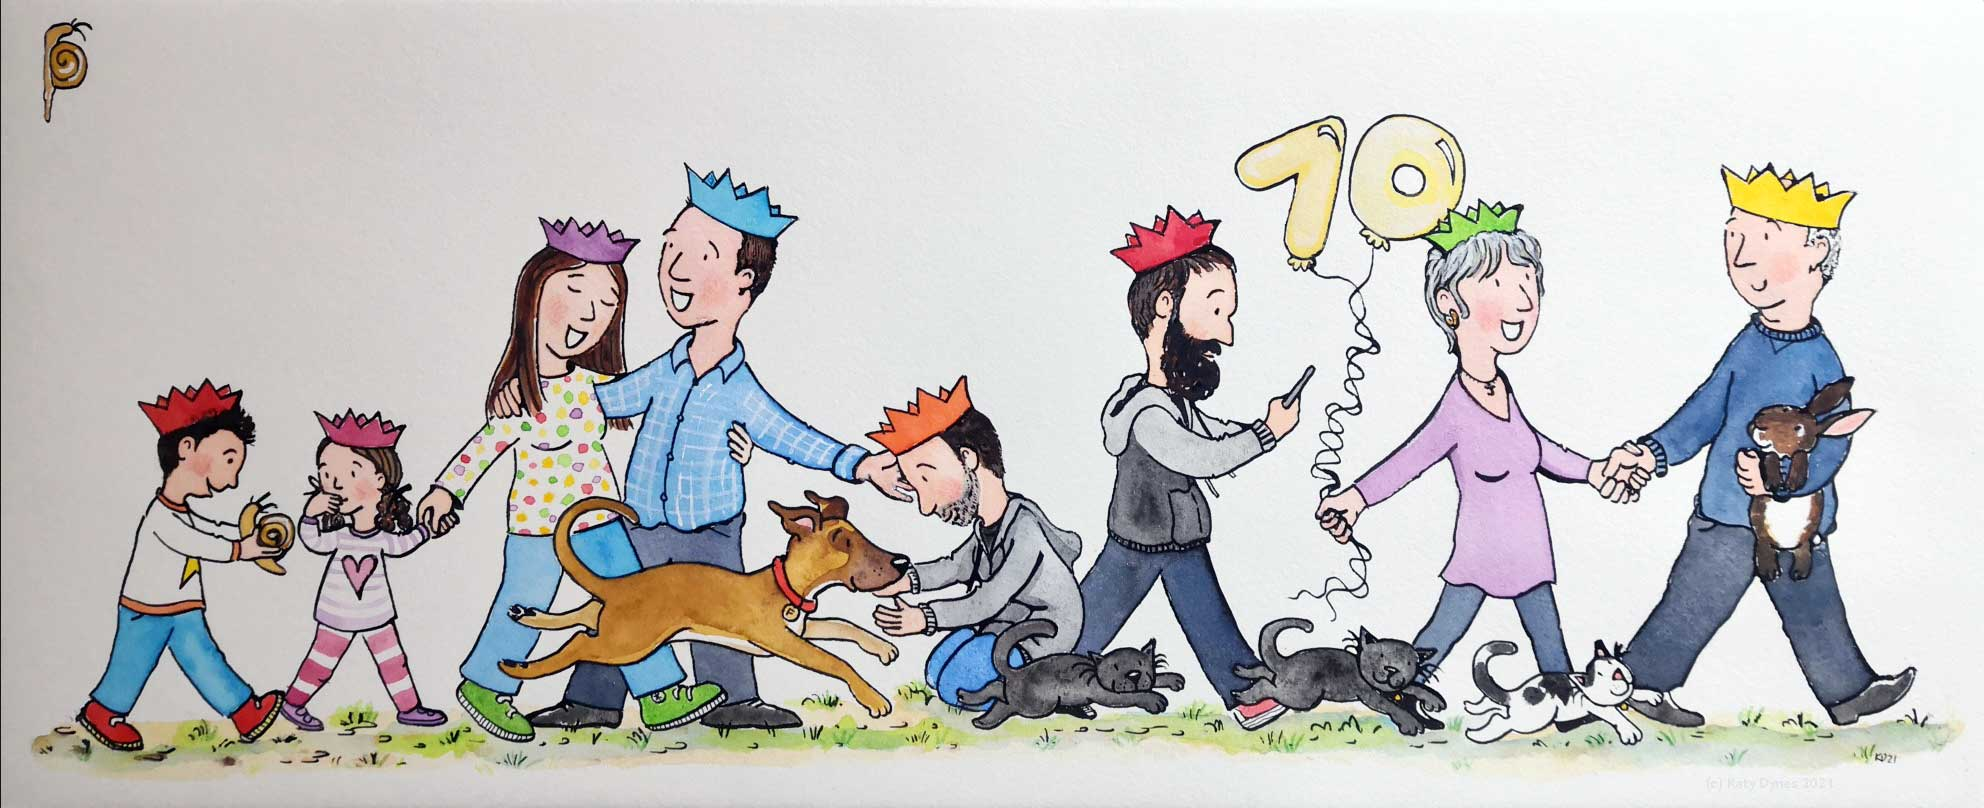 The final painted version of J's commission for S - 70th Birthday - by Katy Dynes 2021